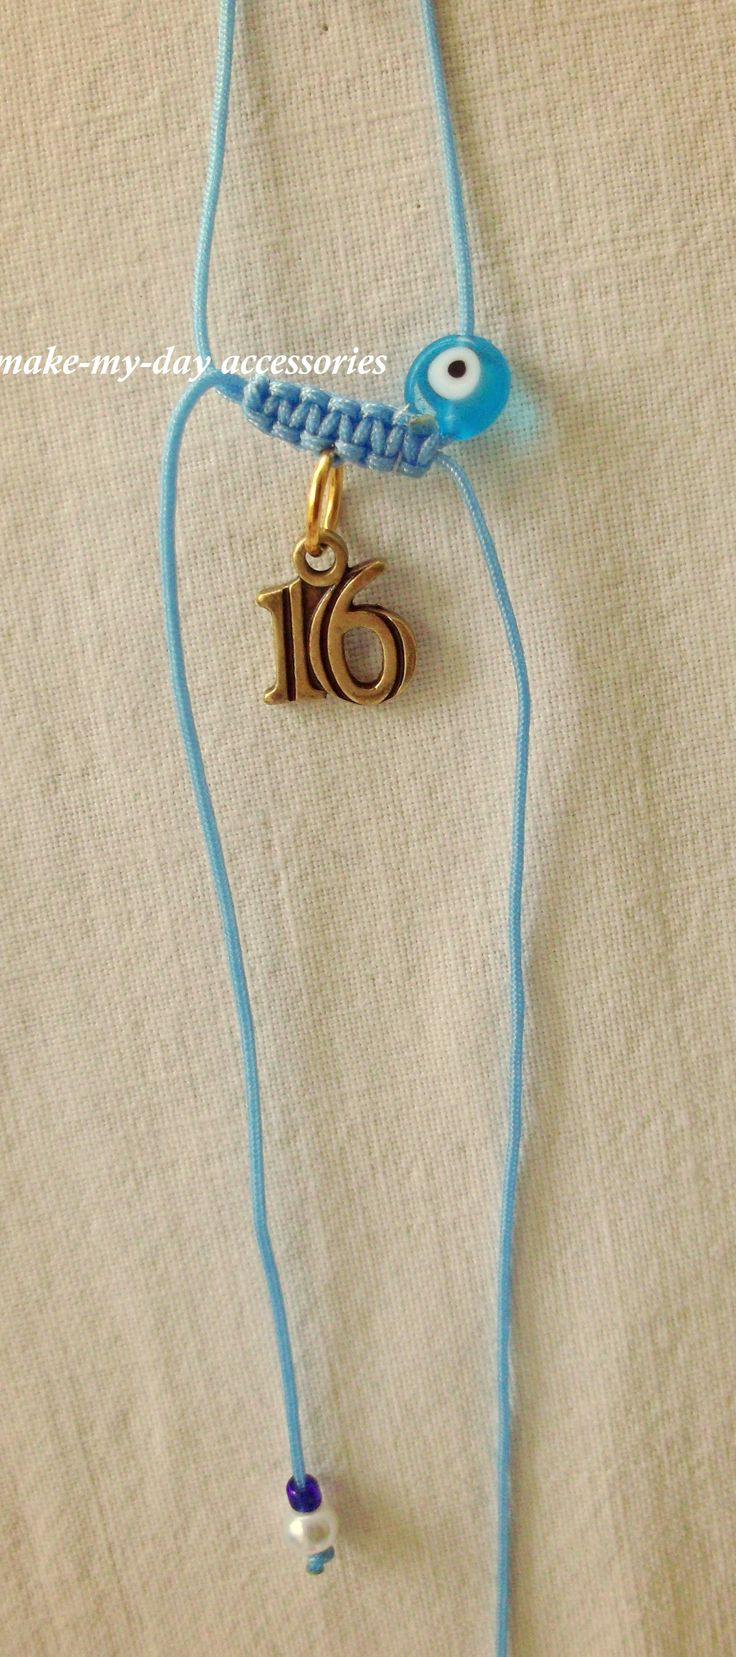 https://www.facebook.com/make.my.day.accessories/ #Greece #lucky_charms #christmas #winter #new_year_eve #handmade #creative #2016 #door #home #gouria #ribbons #crafts #DIY #necklace